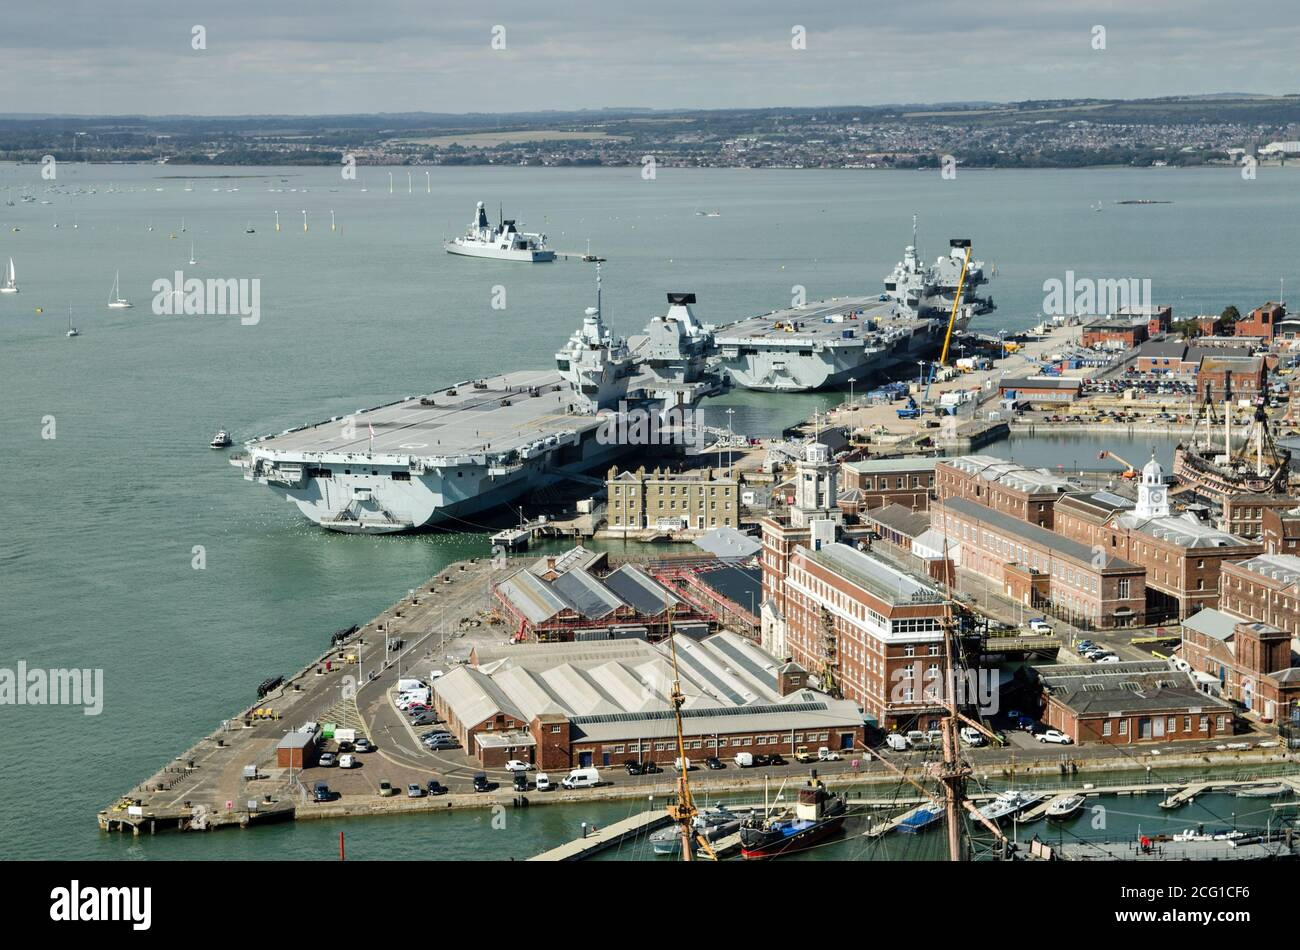 Aerial view of the two largest ships in the Royal Navy, the aircraft carriers Queen Elizabeth and the Prince of Wales moored beside each other in Port Stock Photo